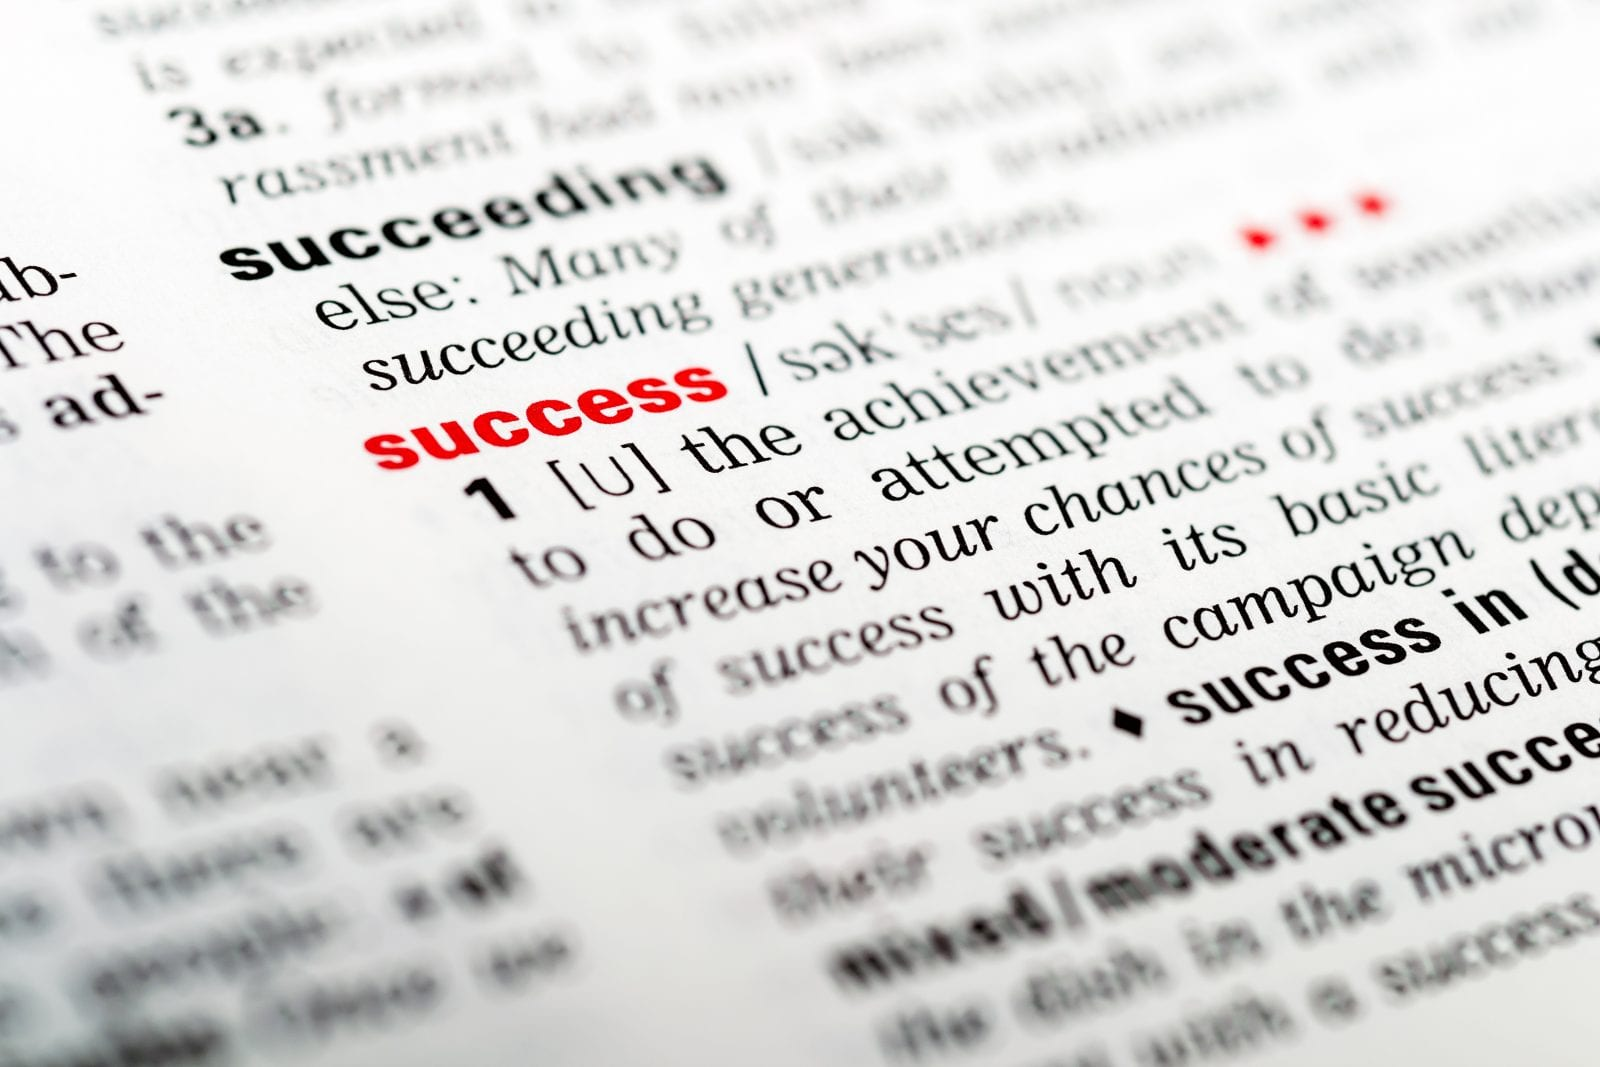 definition of success in dictionary